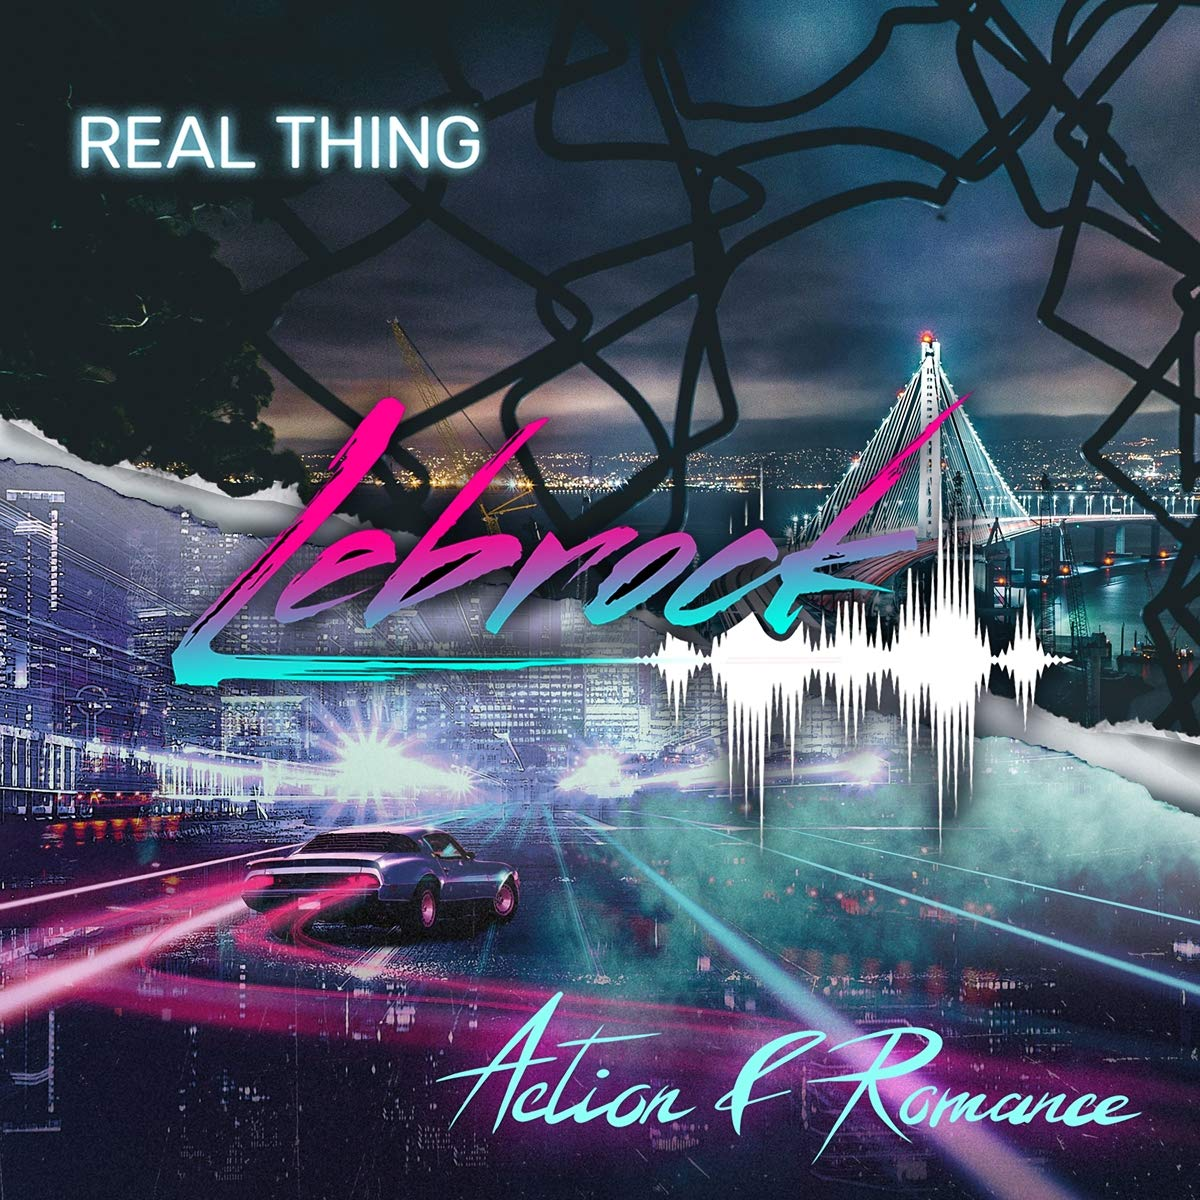 LeBrock - Real Thing  Action & Romance (2020) [FLAC] Download